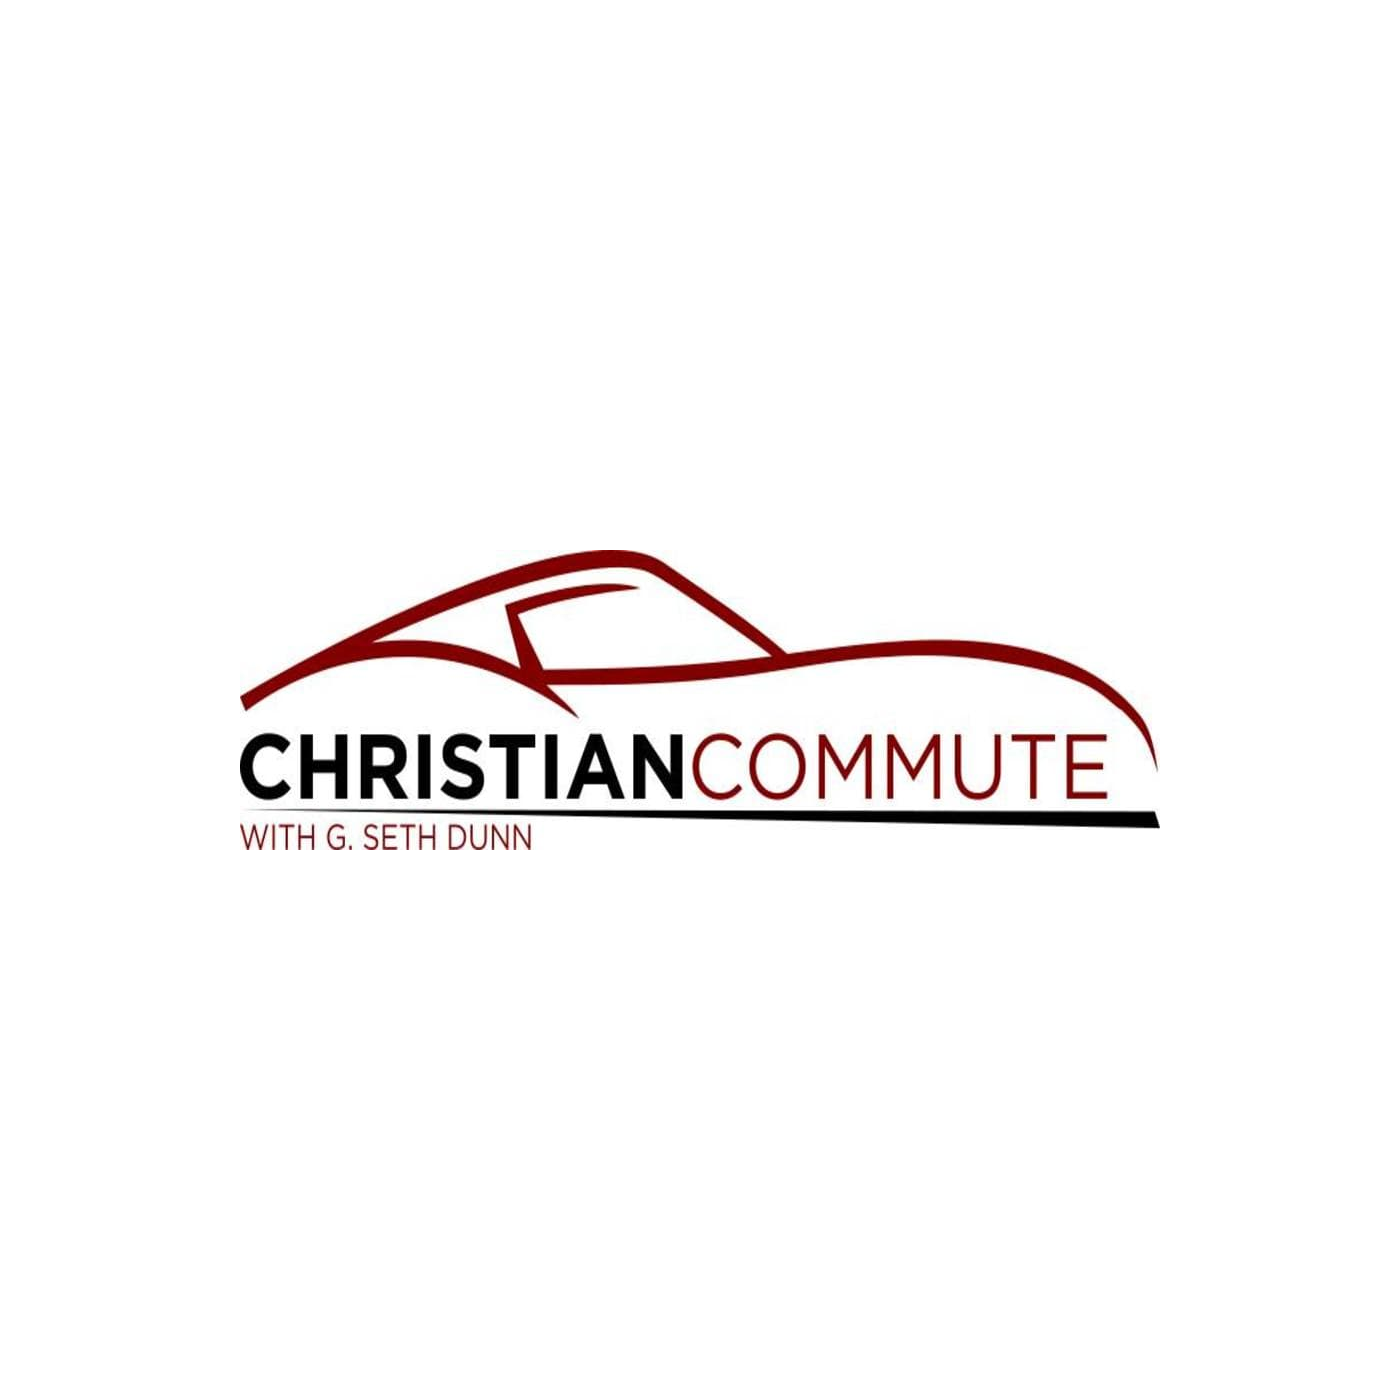 The Christian Commute – Bible Thumping Wingnut Network